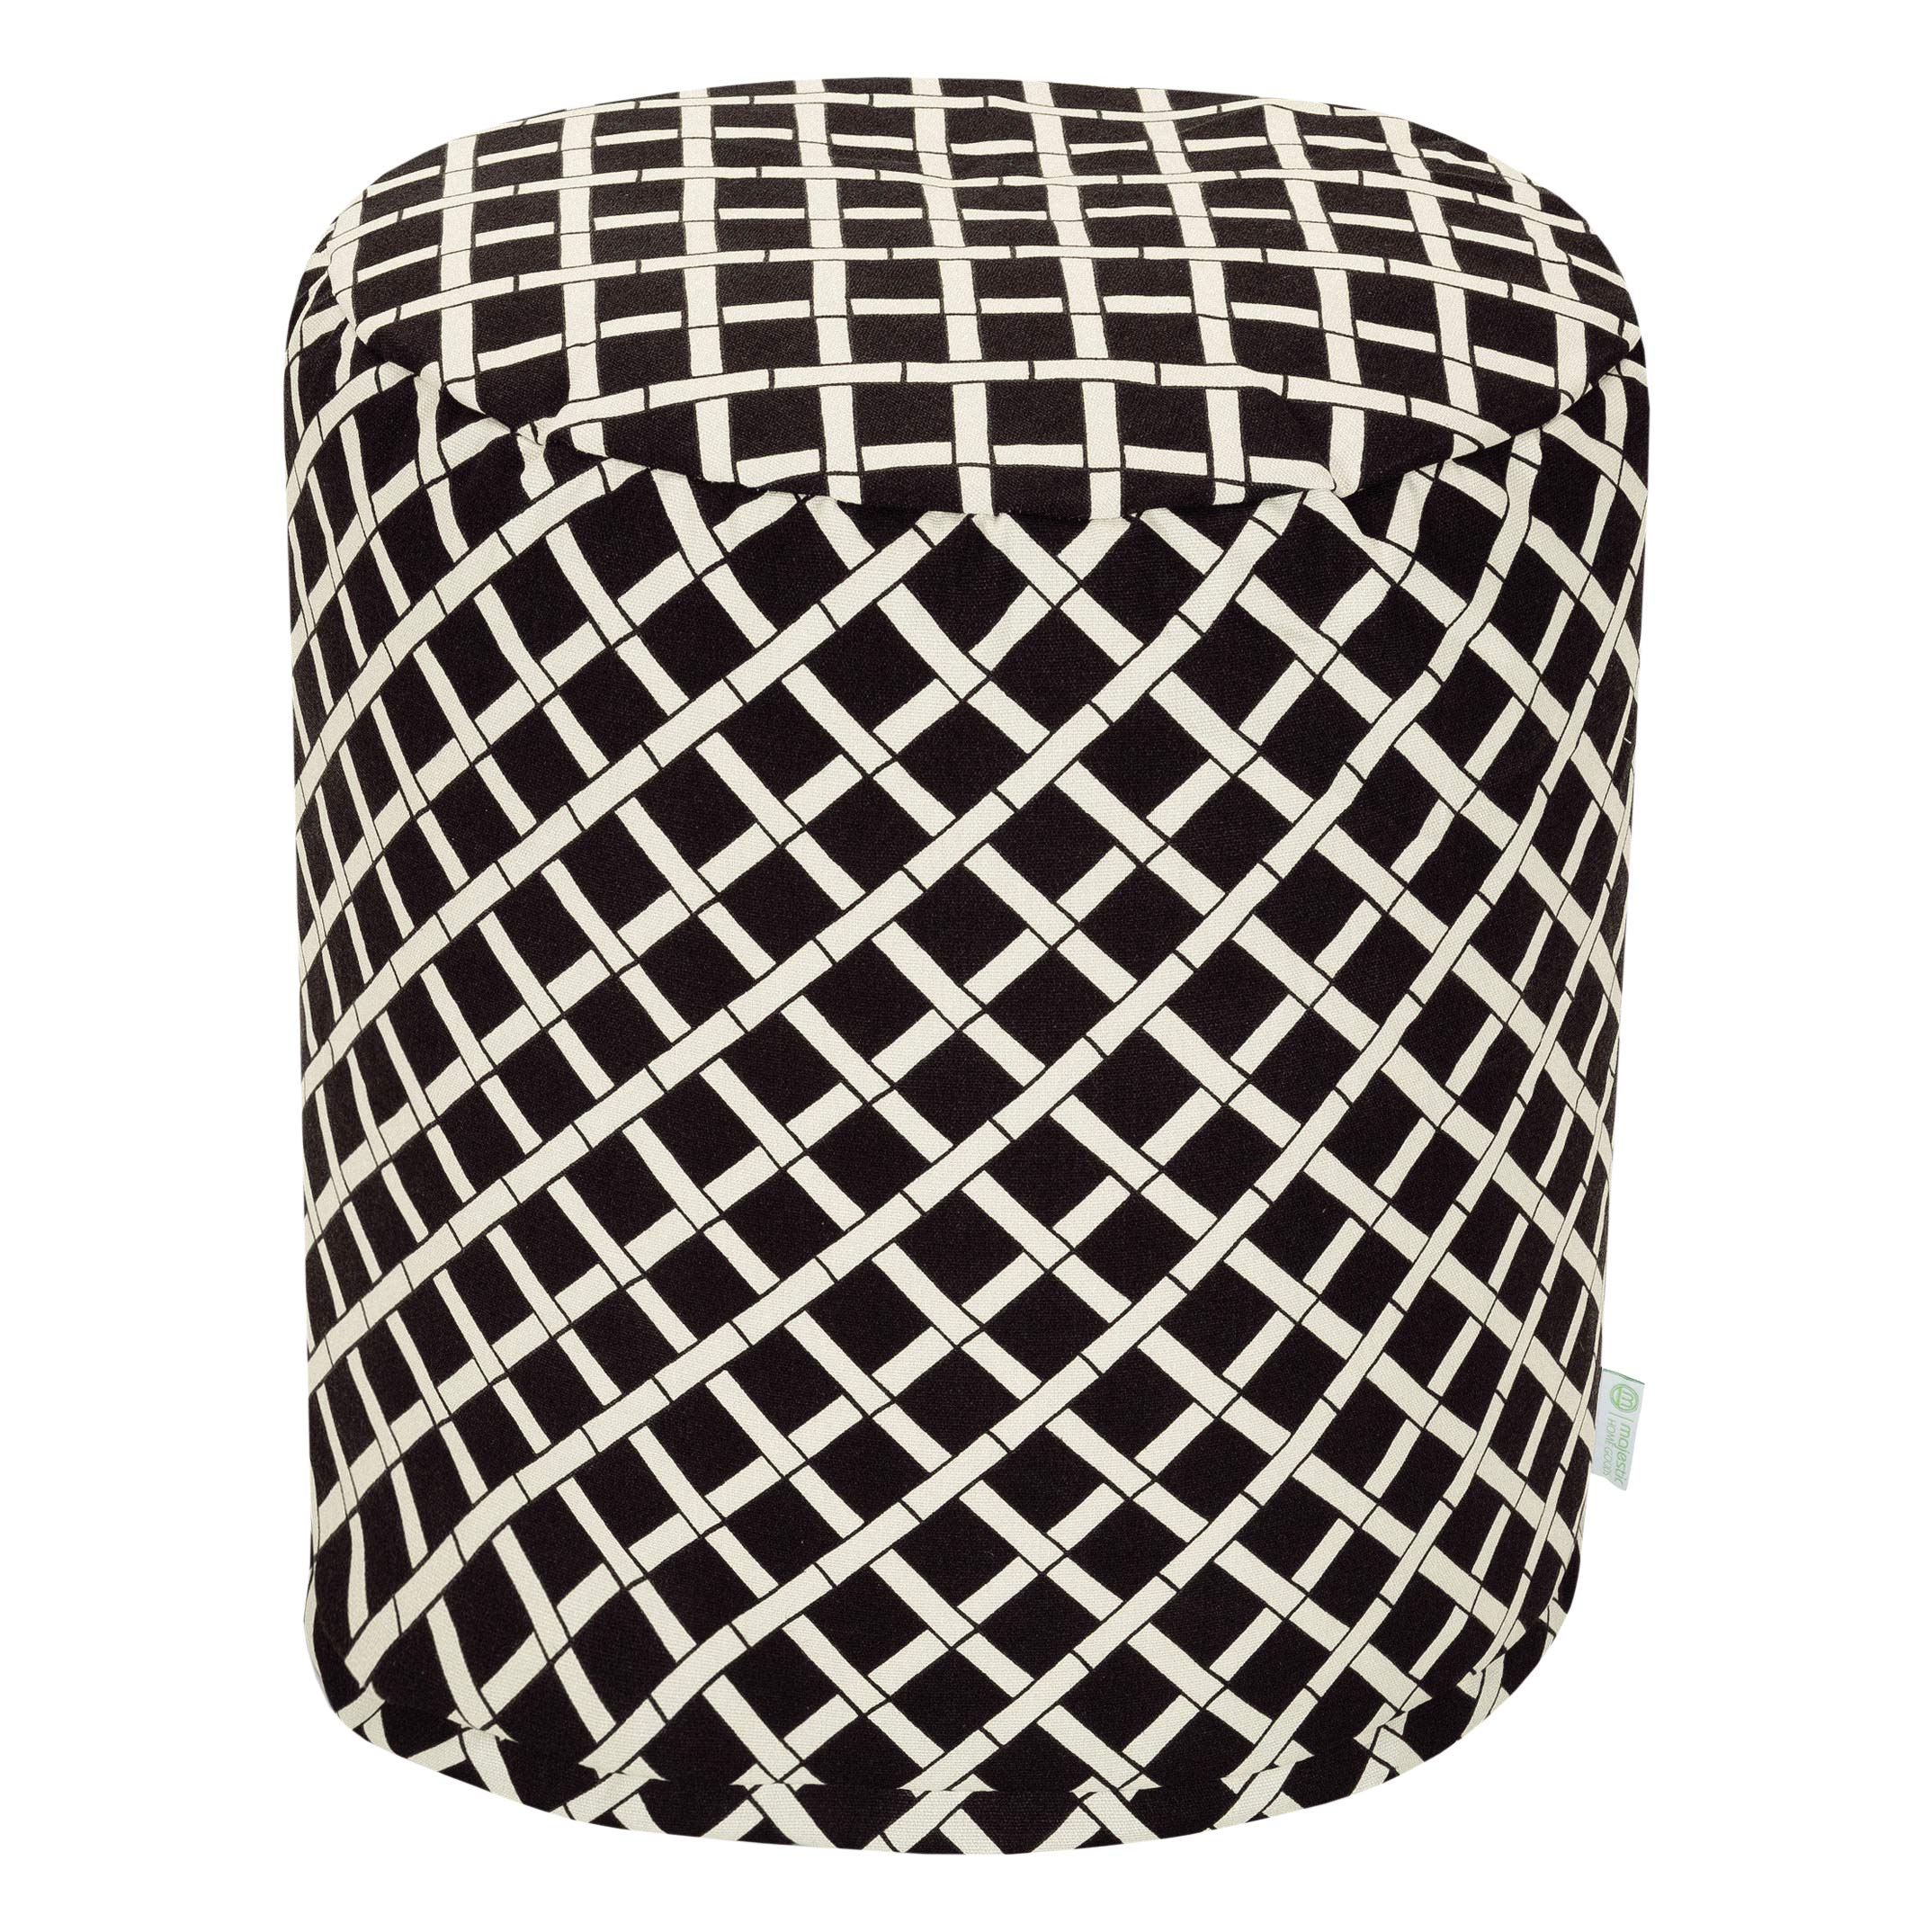 Majestic Home Goods Black Bamboo Indoor/Outdoor Bean Bag Ottoman Pouf 16'' L x 16'' W x 17'' H